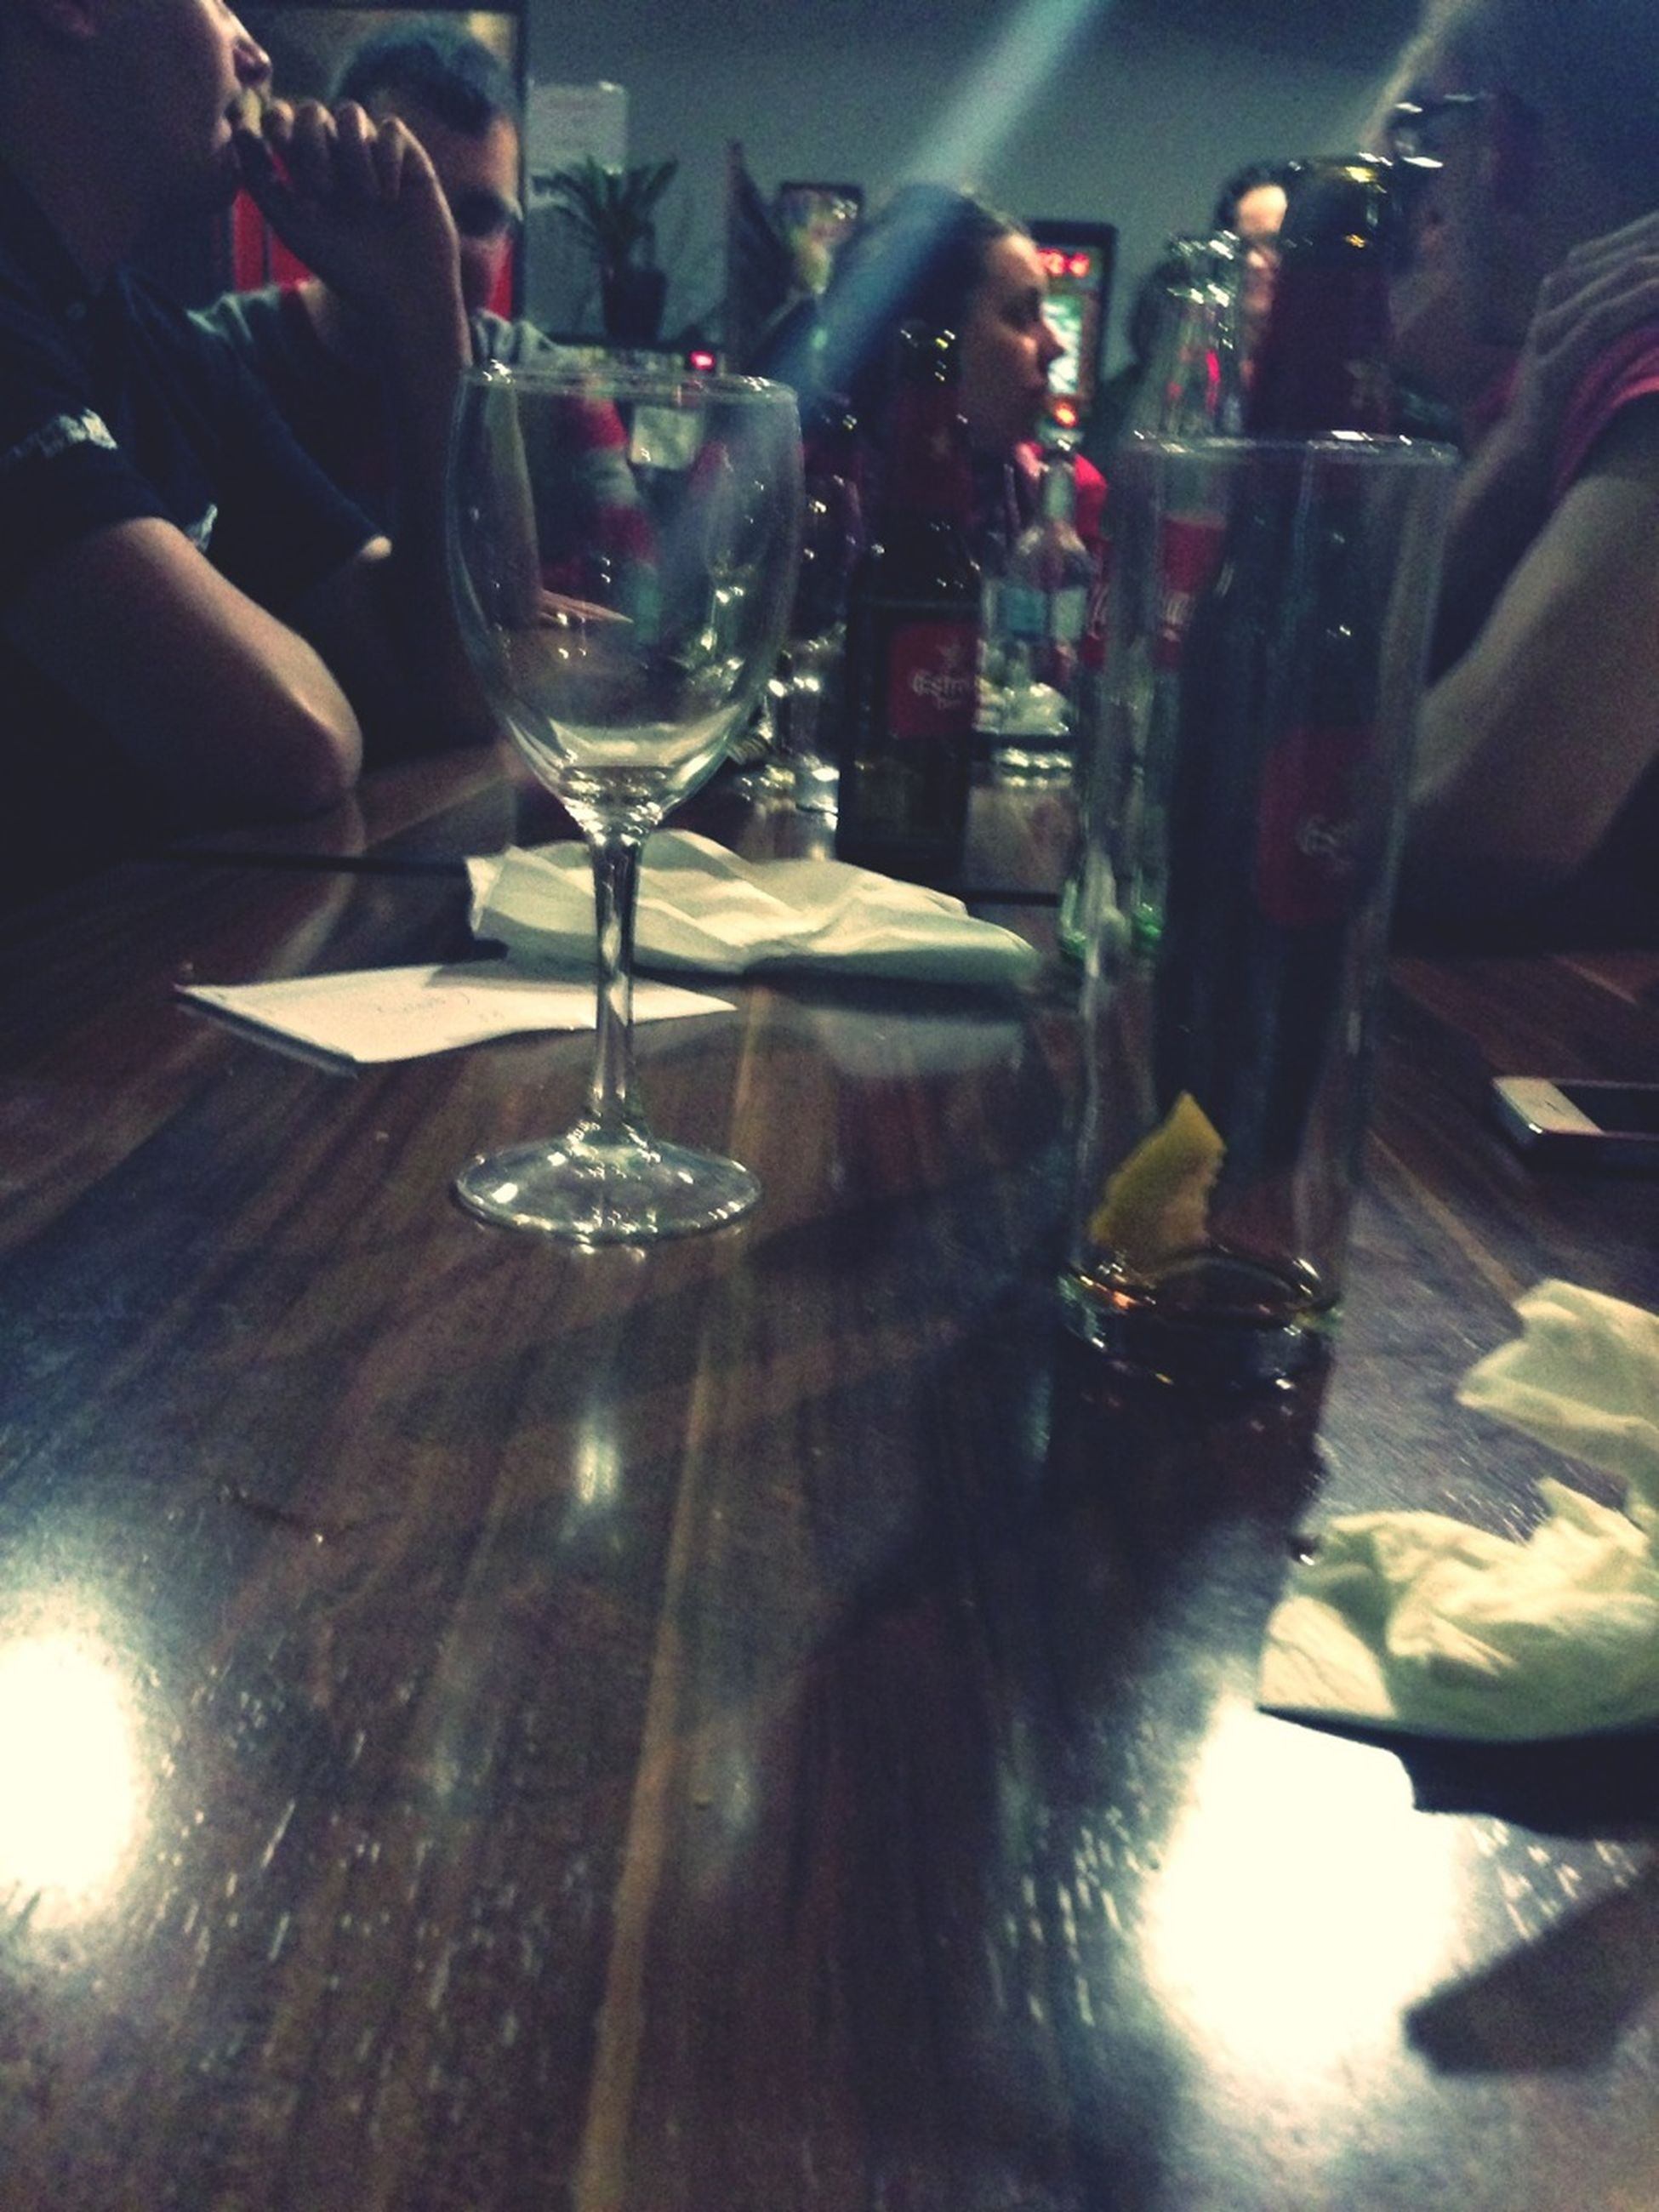 indoors, drinking glass, wineglass, glass - material, person, table, lifestyles, men, drink, leisure activity, unrecognizable person, illuminated, part of, alcohol, food and drink, incidental people, restaurant